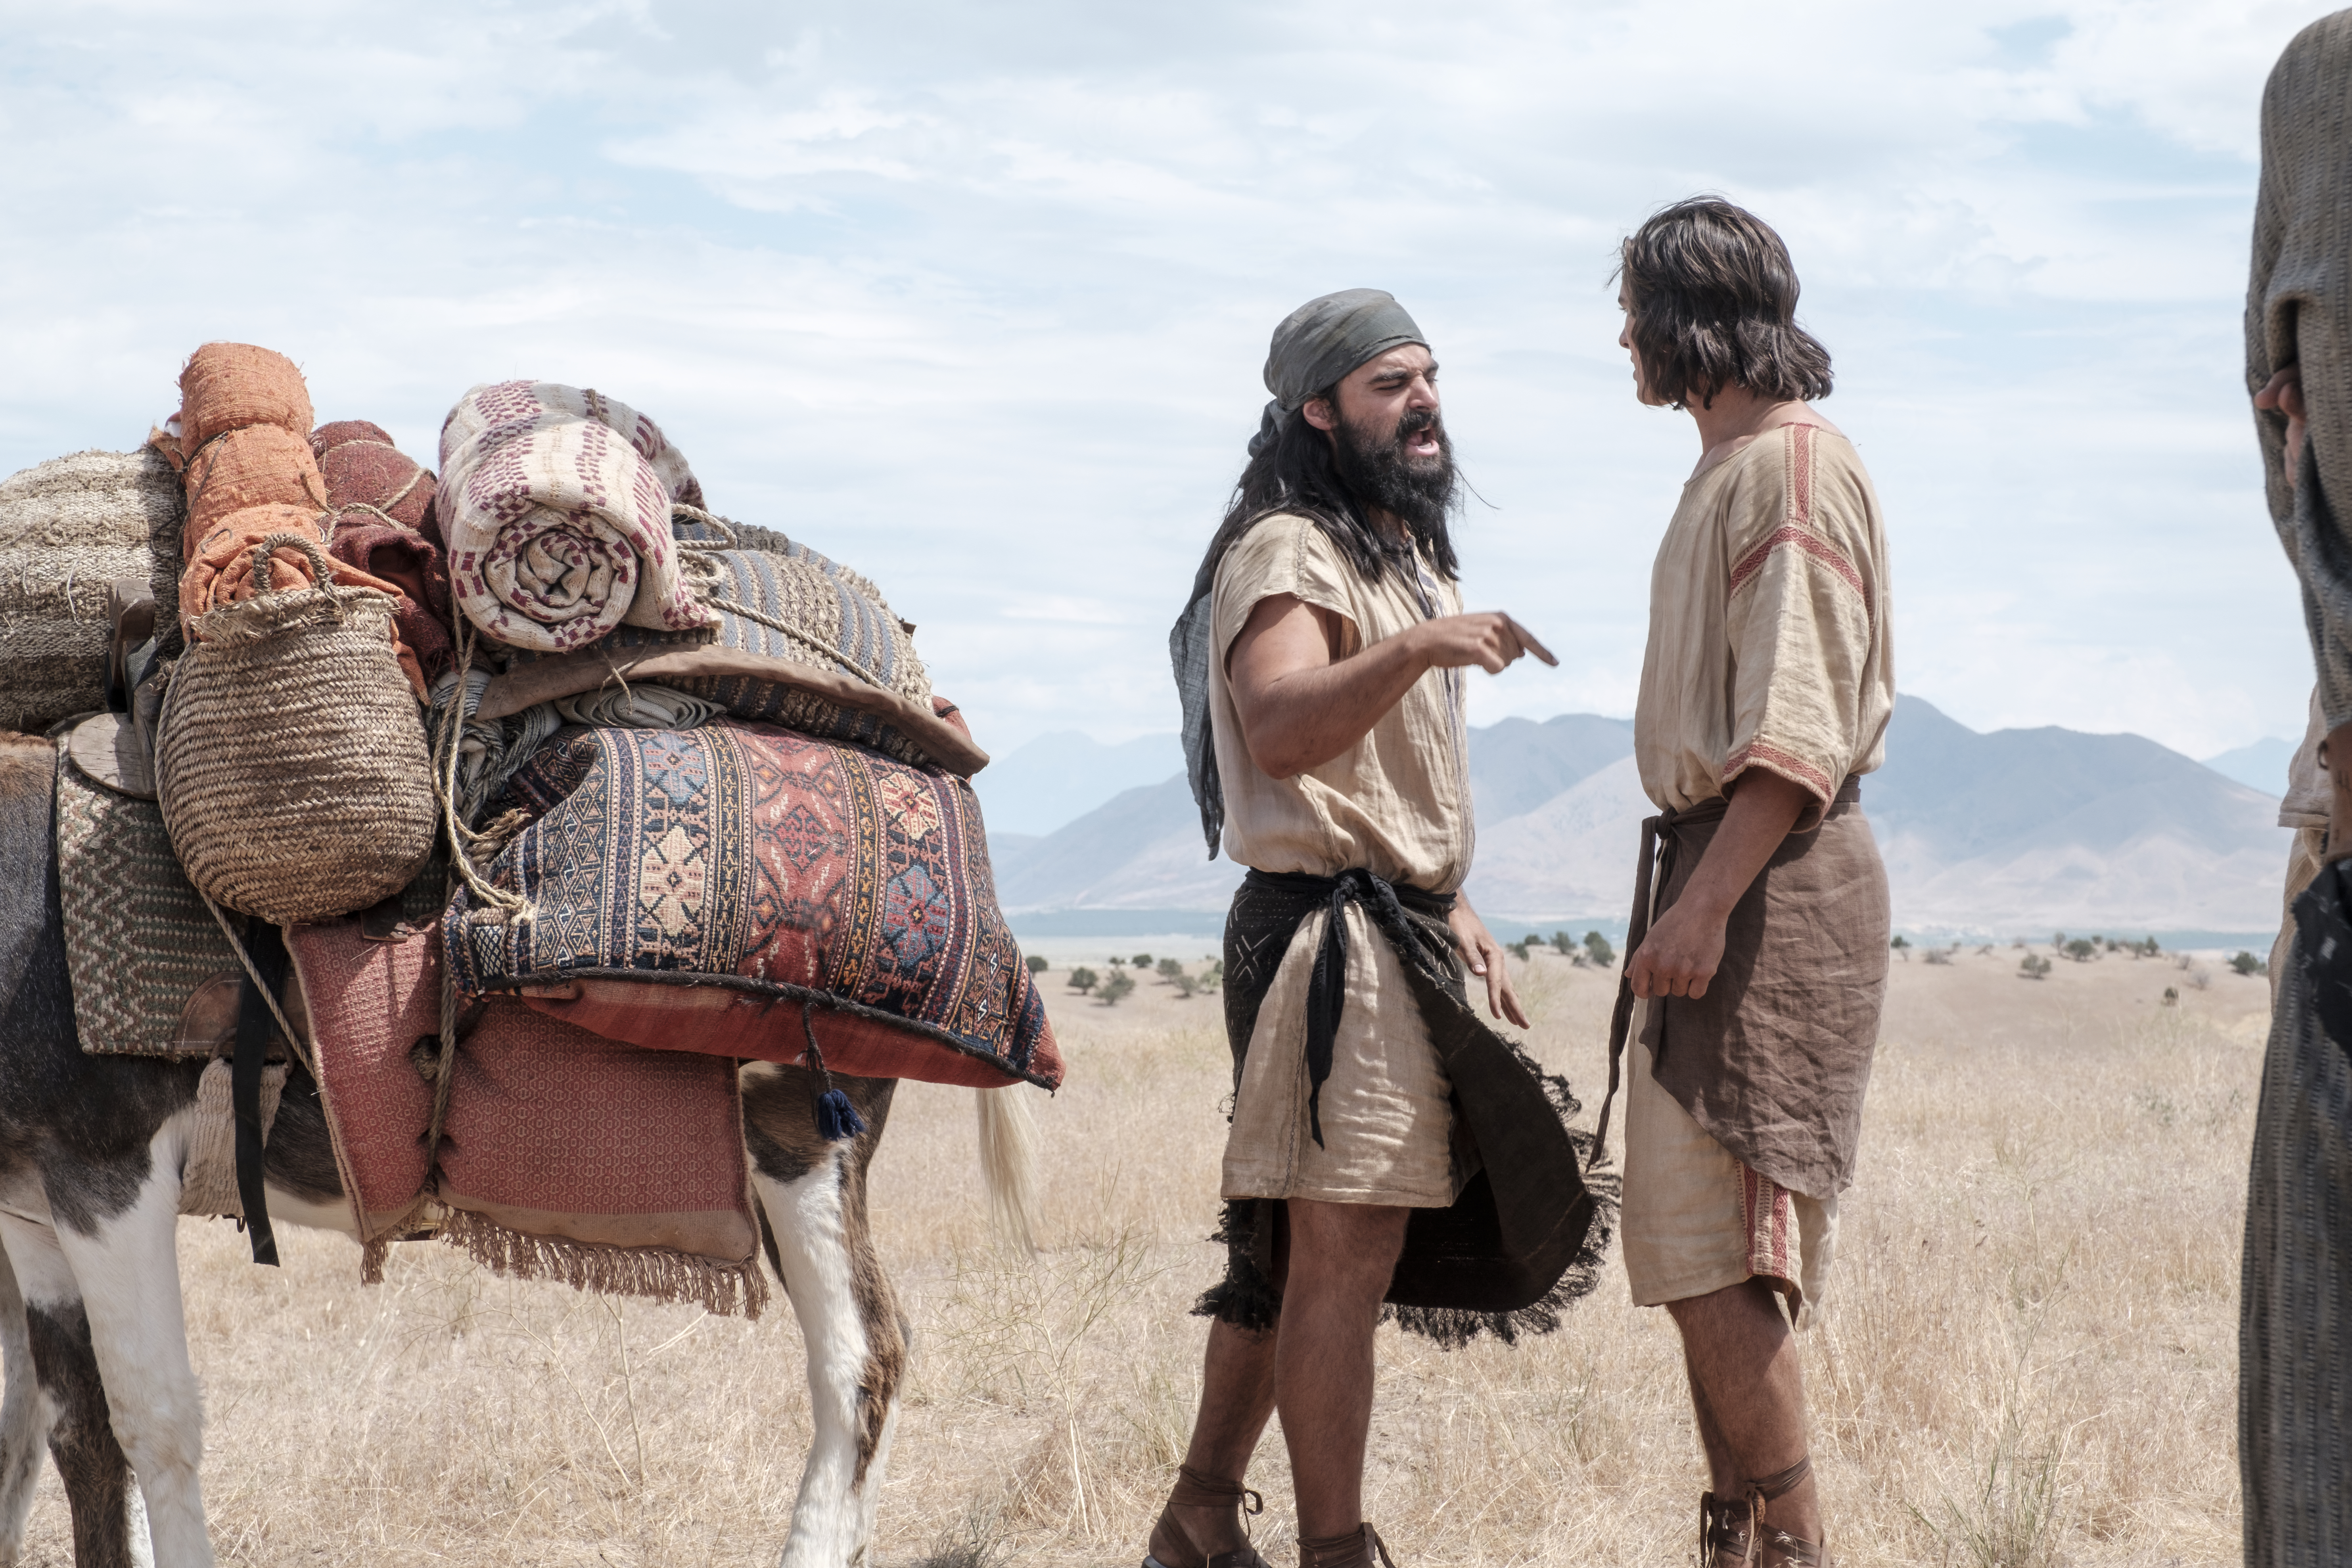 Laman and Nephi argue in the wilderness.